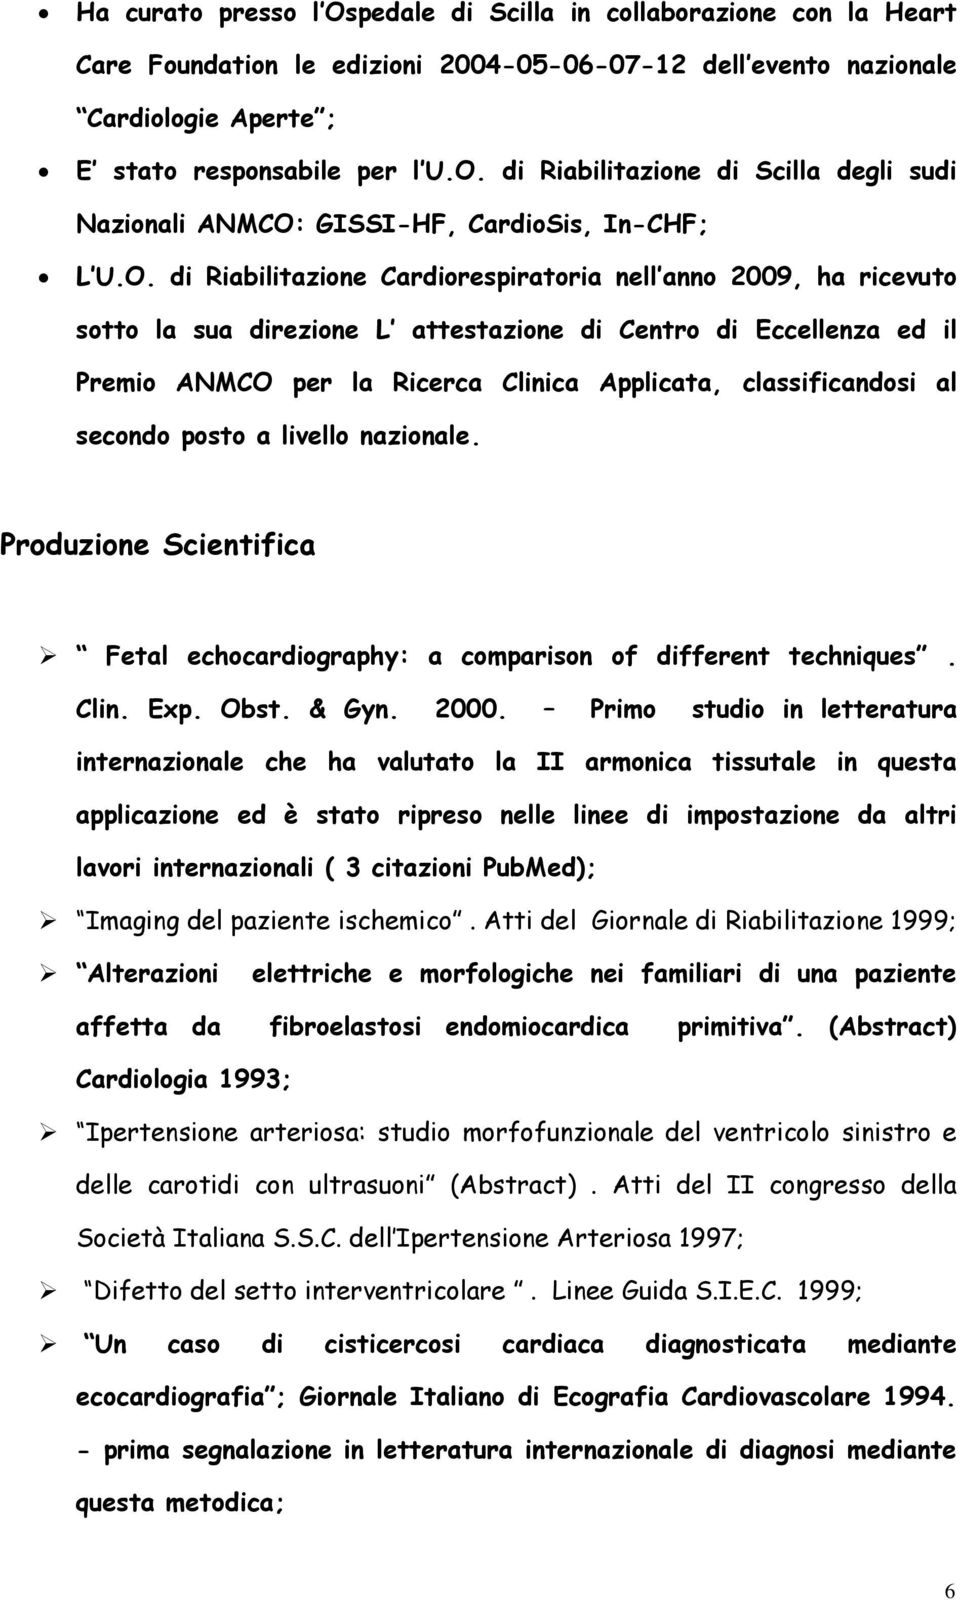 al secondo posto a livello nazionale. Produzione Scientifica Fetal echocardiography: a comparison of different techniques. Clin. Exp. Obst. & Gyn. 2000.